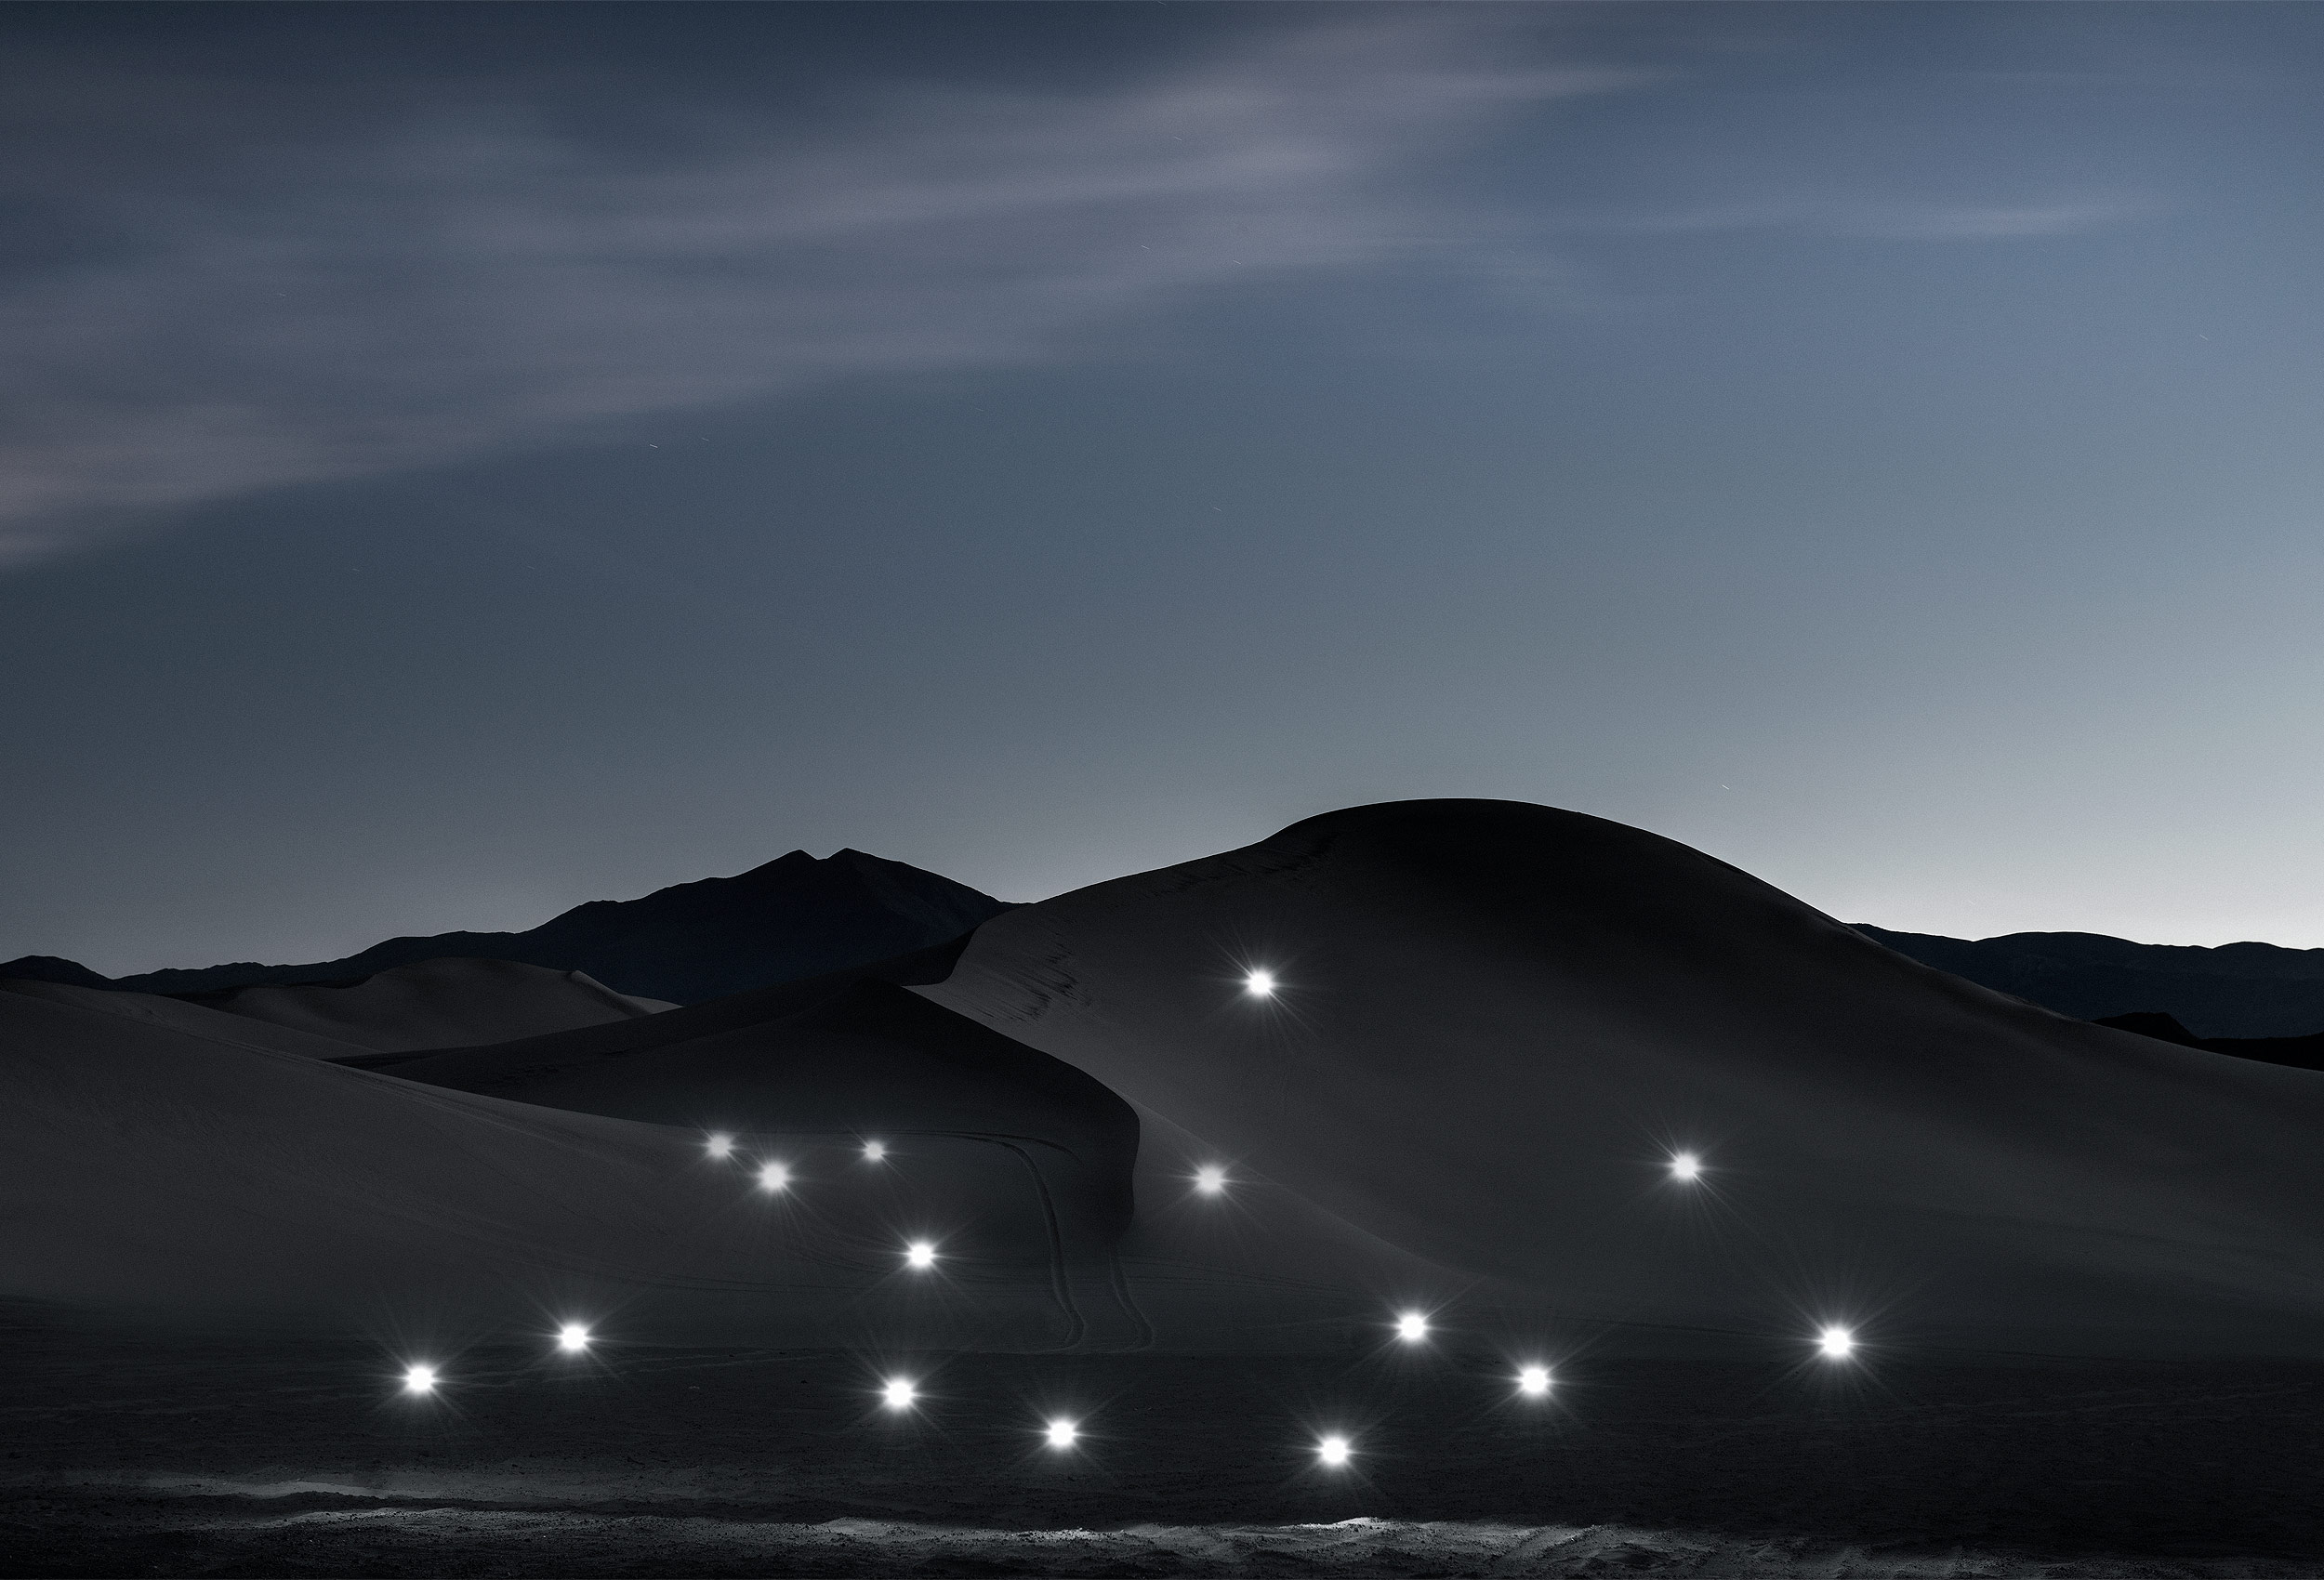 Mystical photograph of Dumont Dunes by fine art photographer Kristopher Grunert